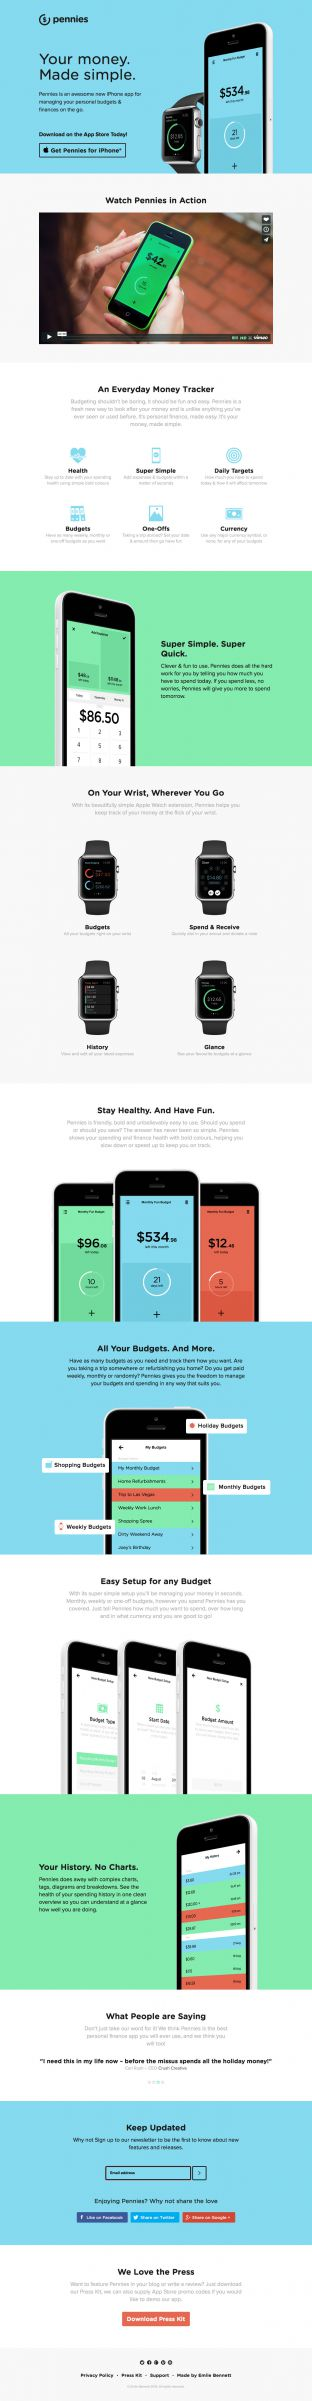 Pennies for iPhone - Personal Money and Finance Manager